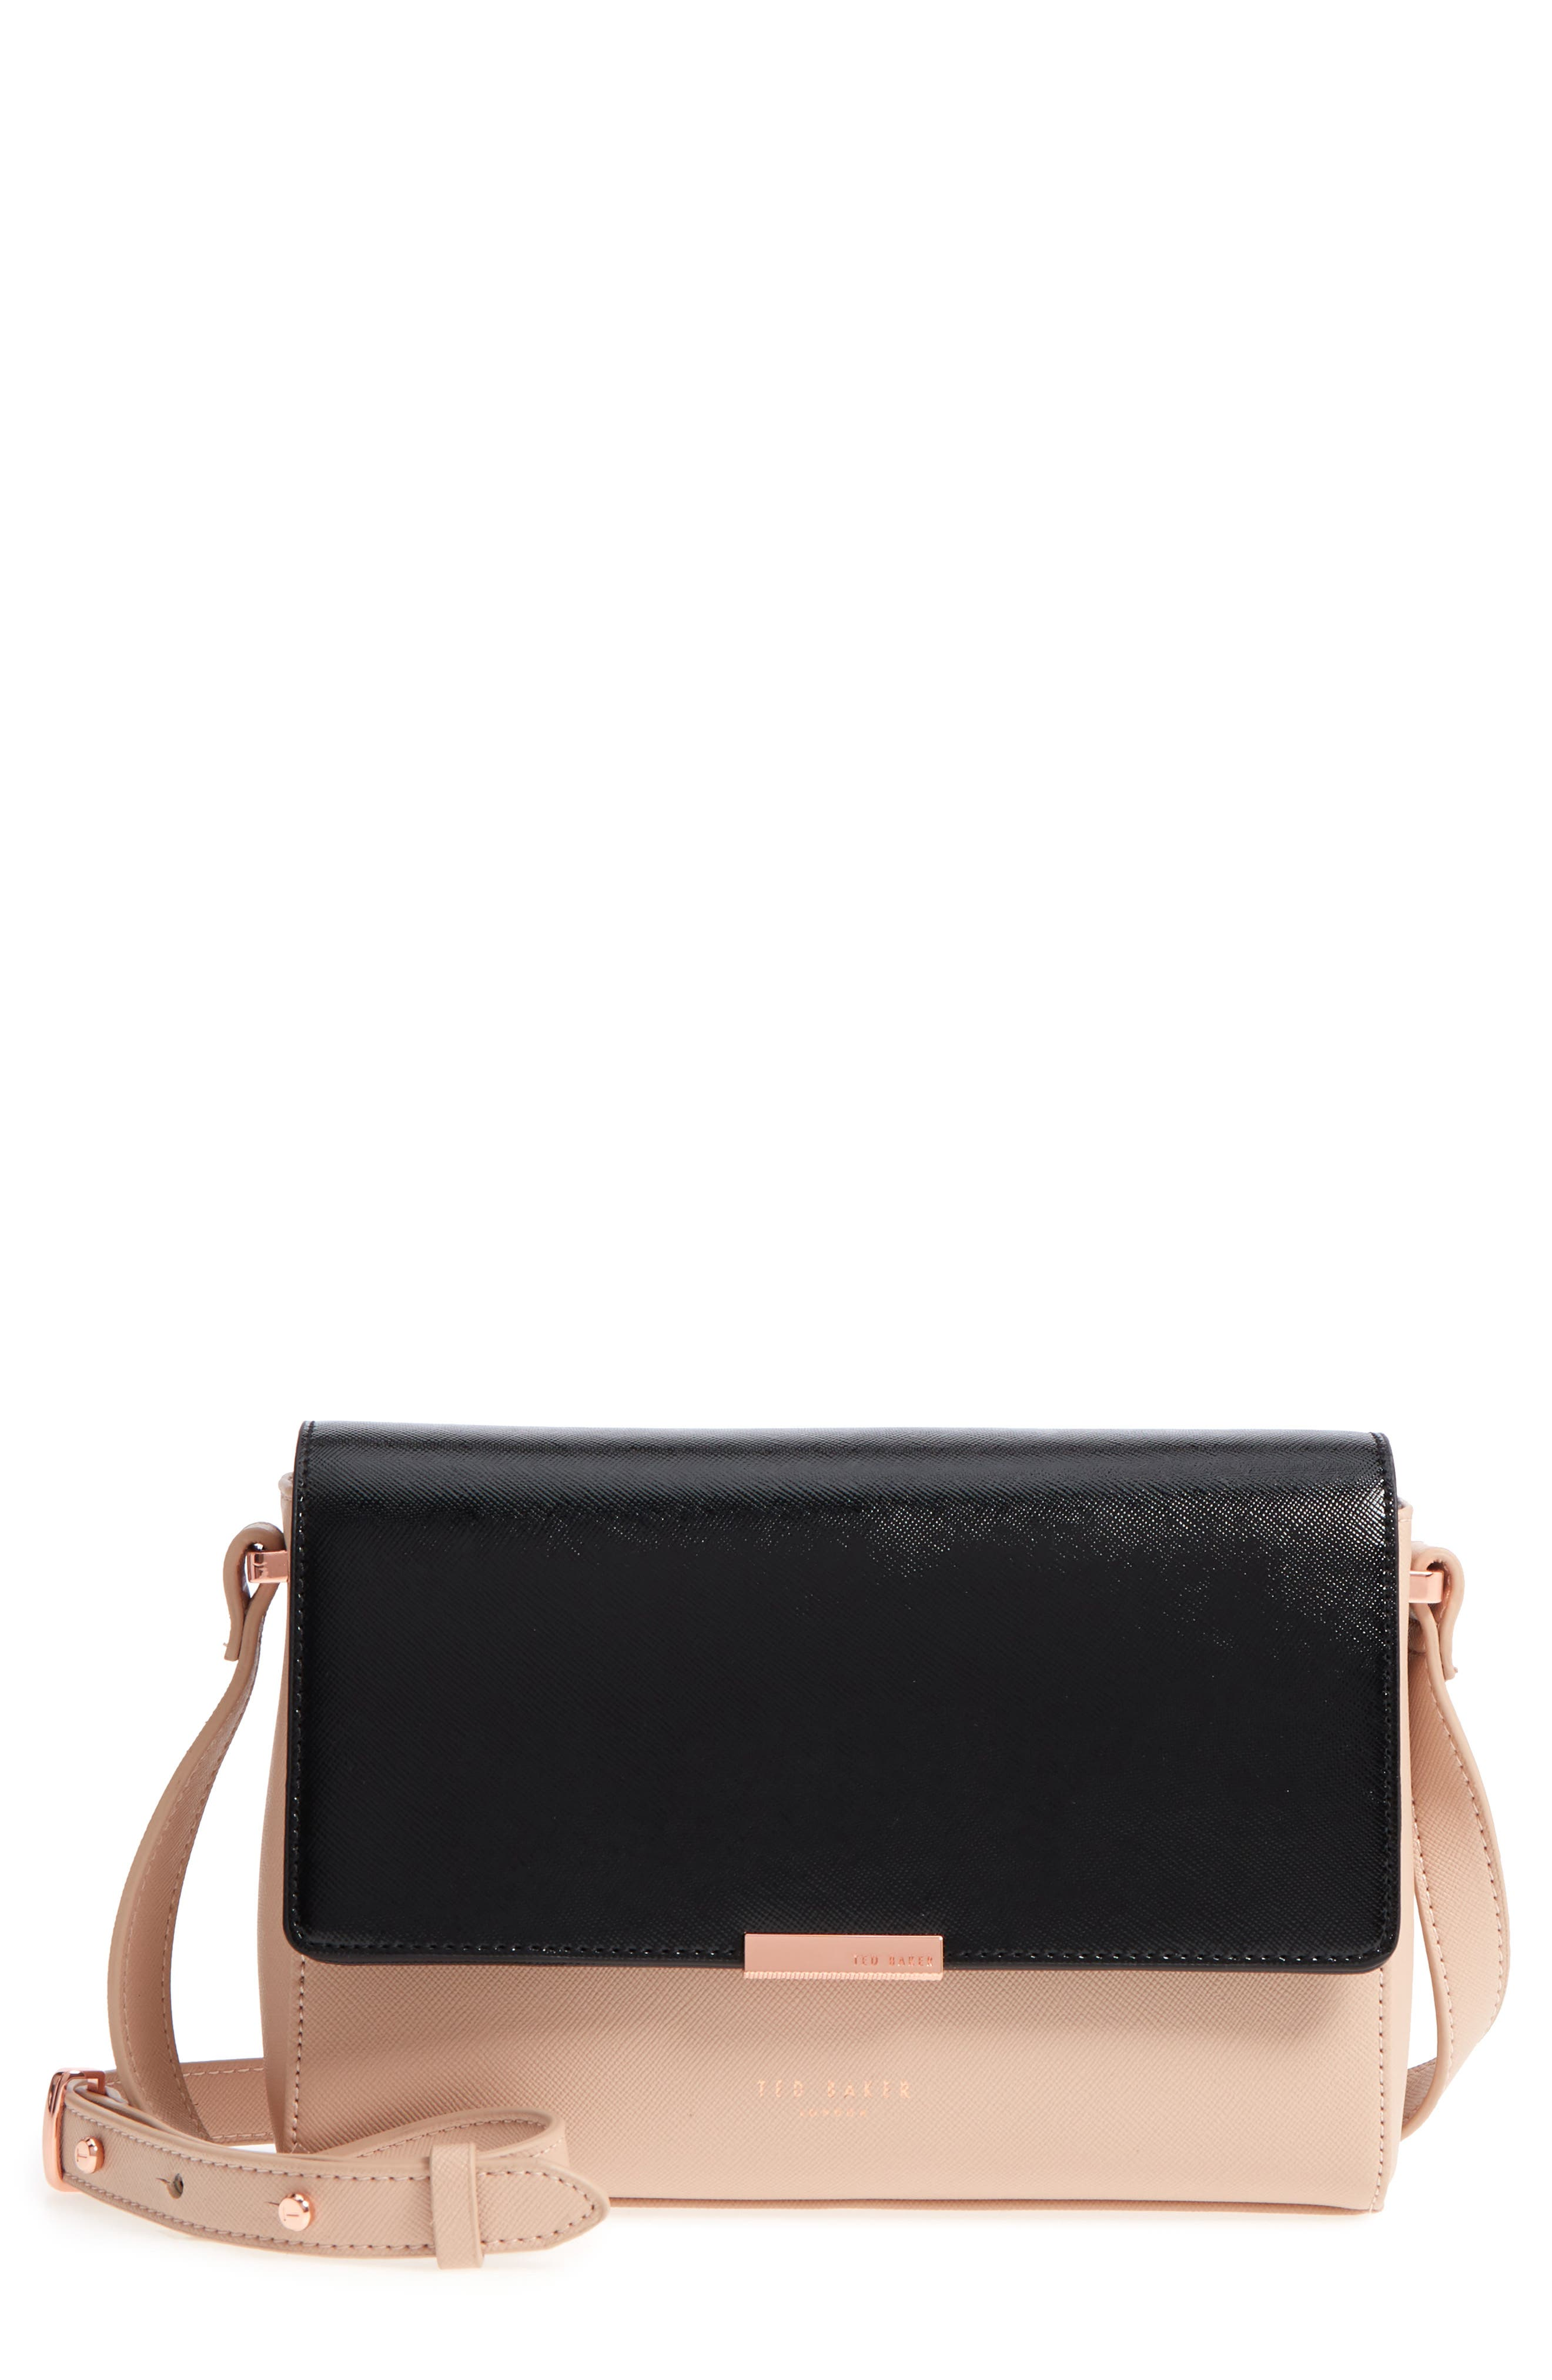 Demonda Faux Leather Crossbody Bag,                         Main,                         color,